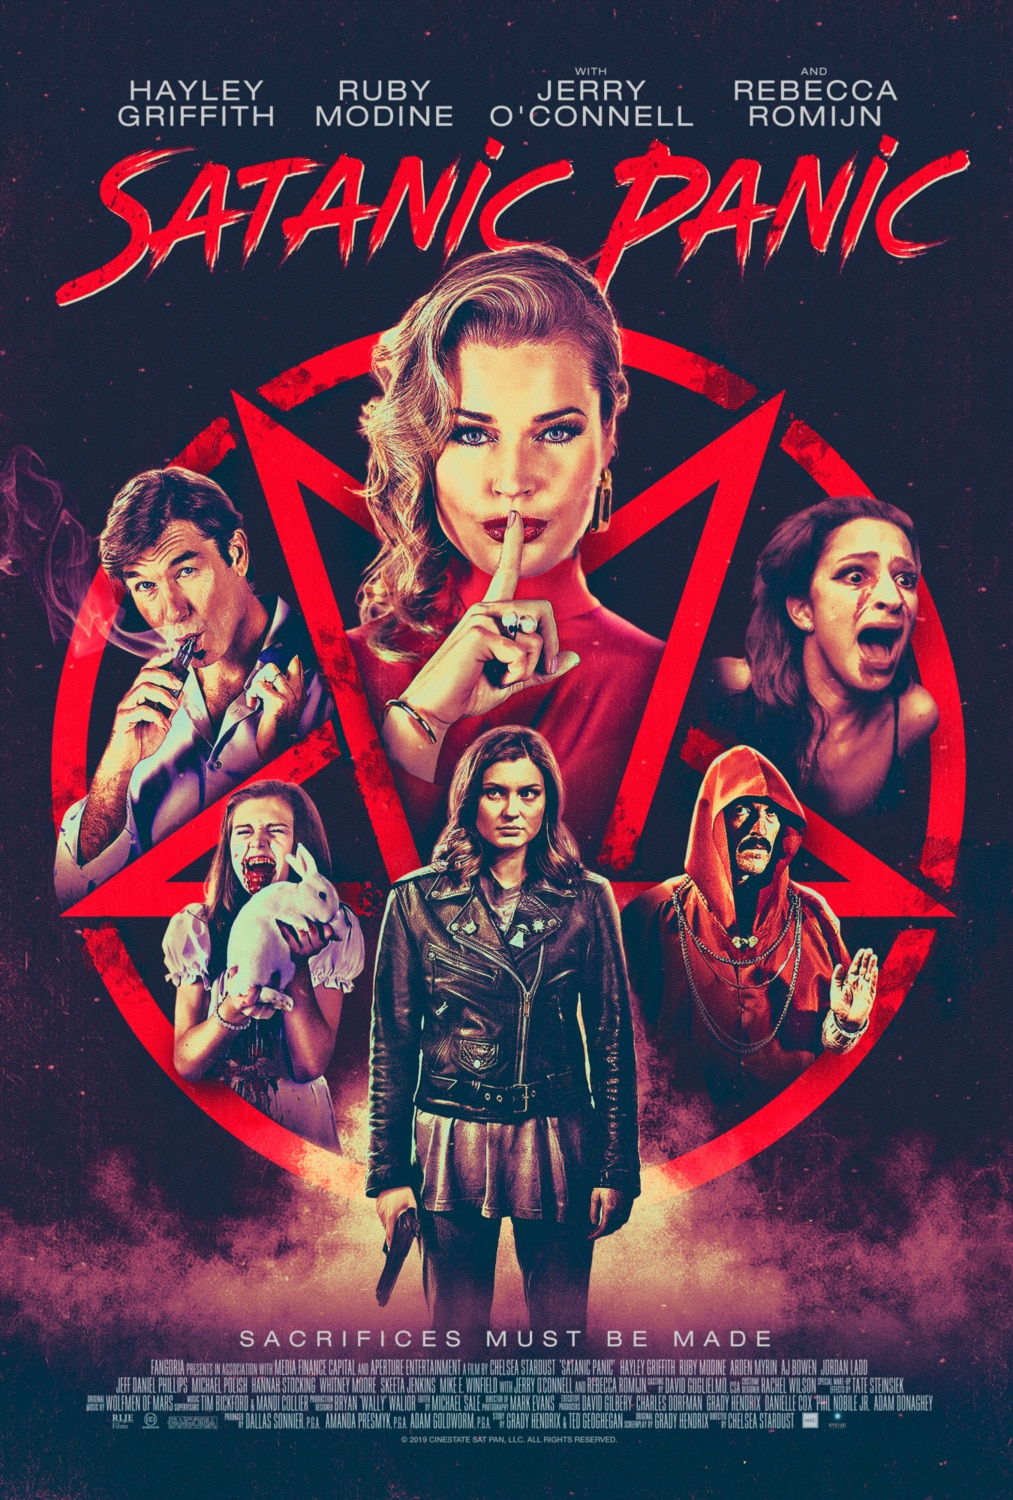 SATANIC PANIC poster 1 - Michelle Swope's Top 10 Horror Movies of 2019